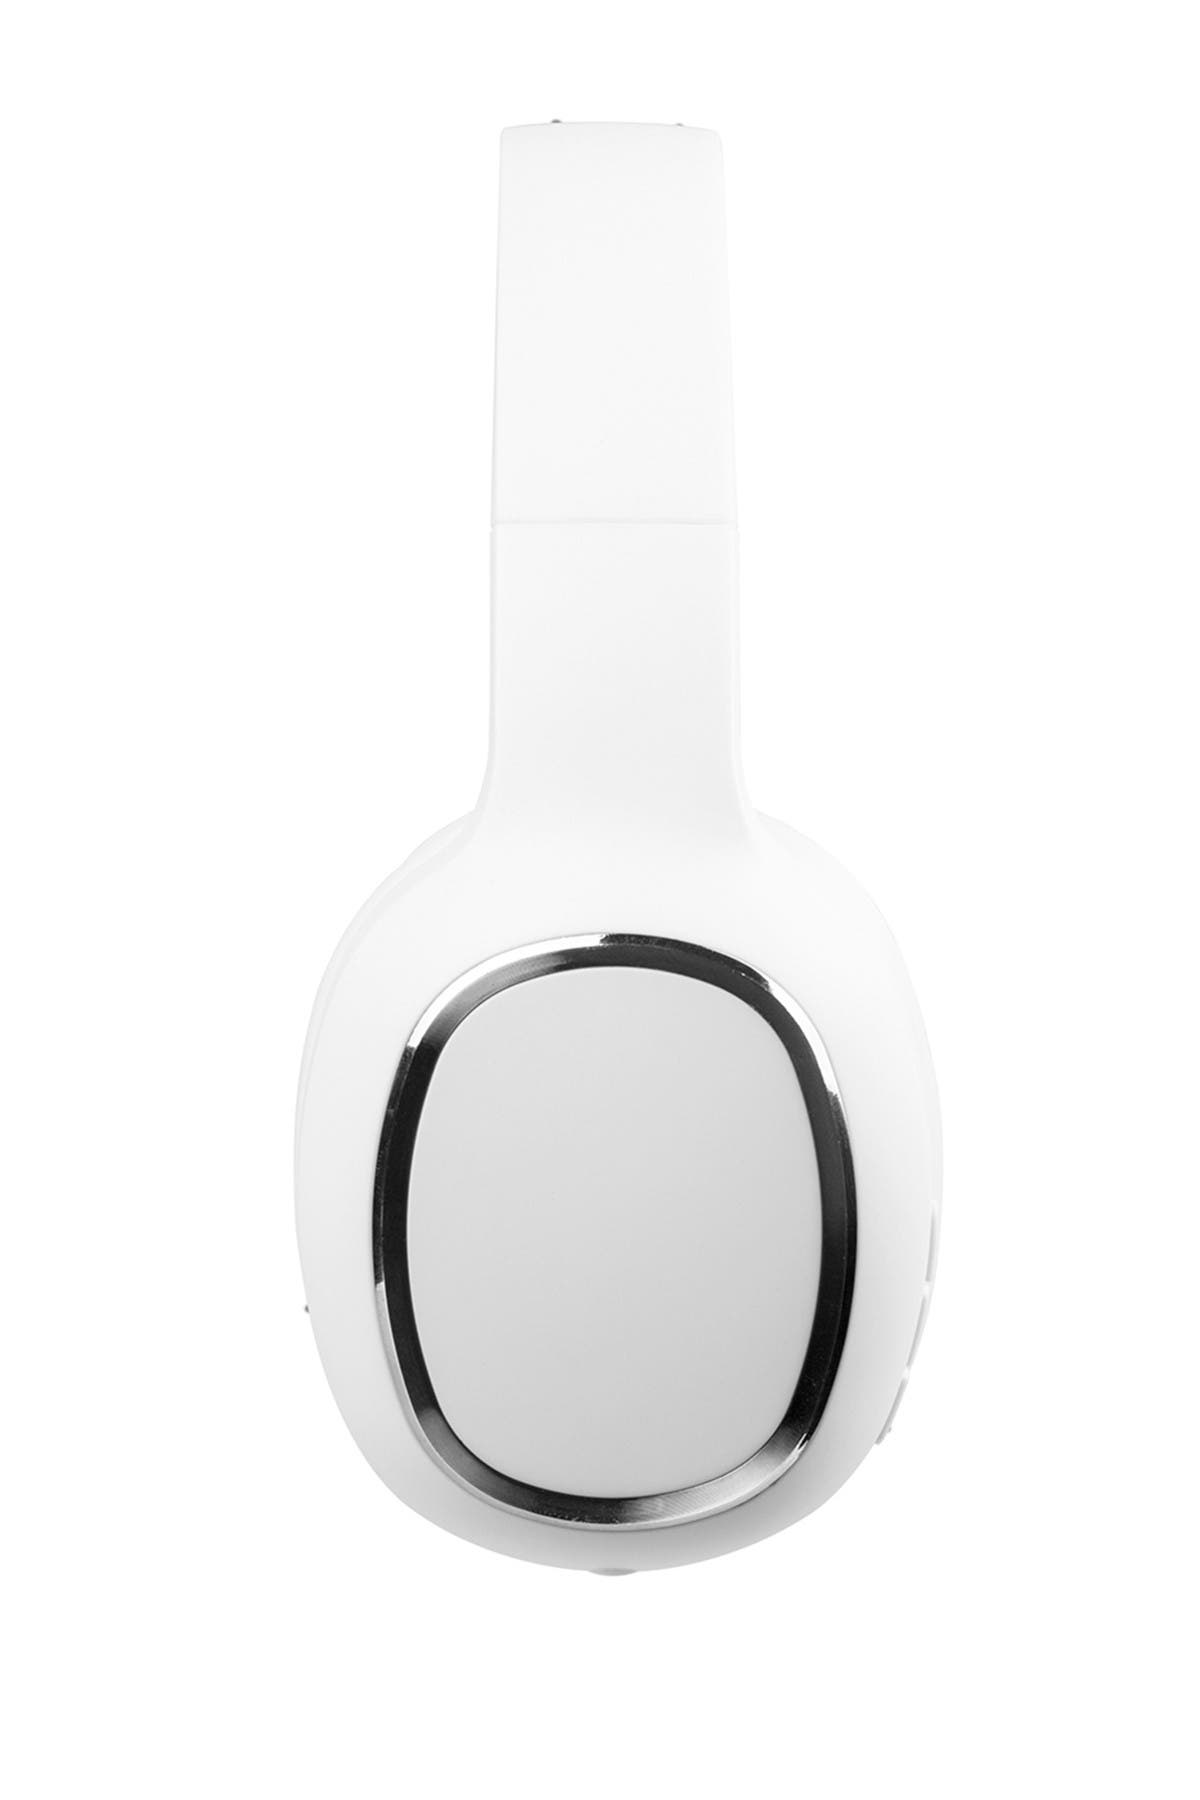 Image of CYLO White/GM Free Wave Bluetooth Headphones